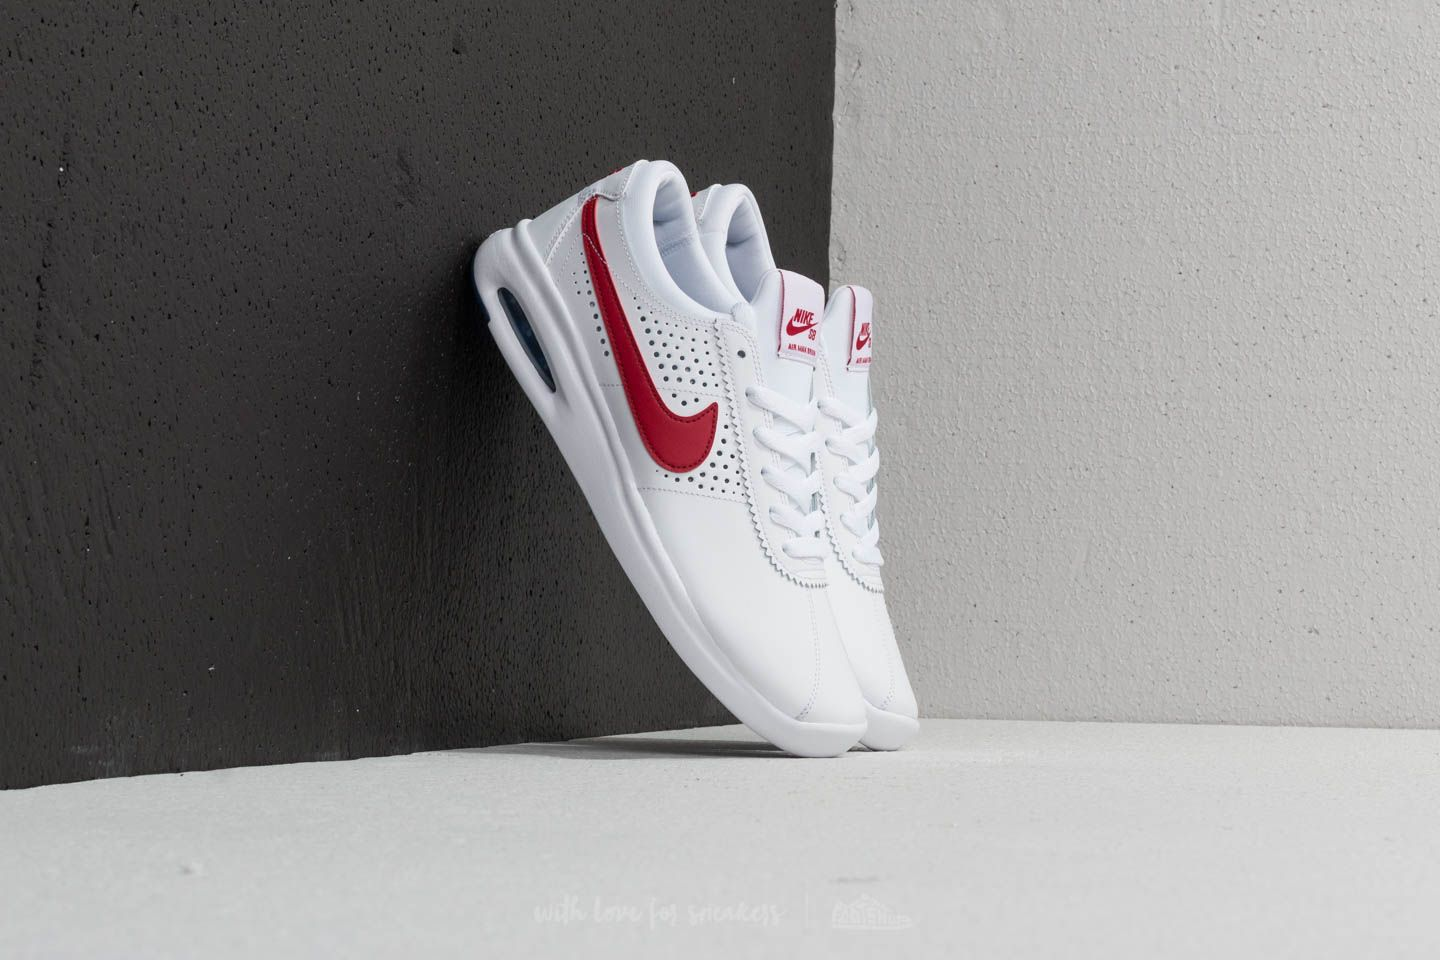 wholesale dealer 5b57f 3d9cf Nike SB Air Max Bruin Vapor White  Gym Red  Game Royal at a great